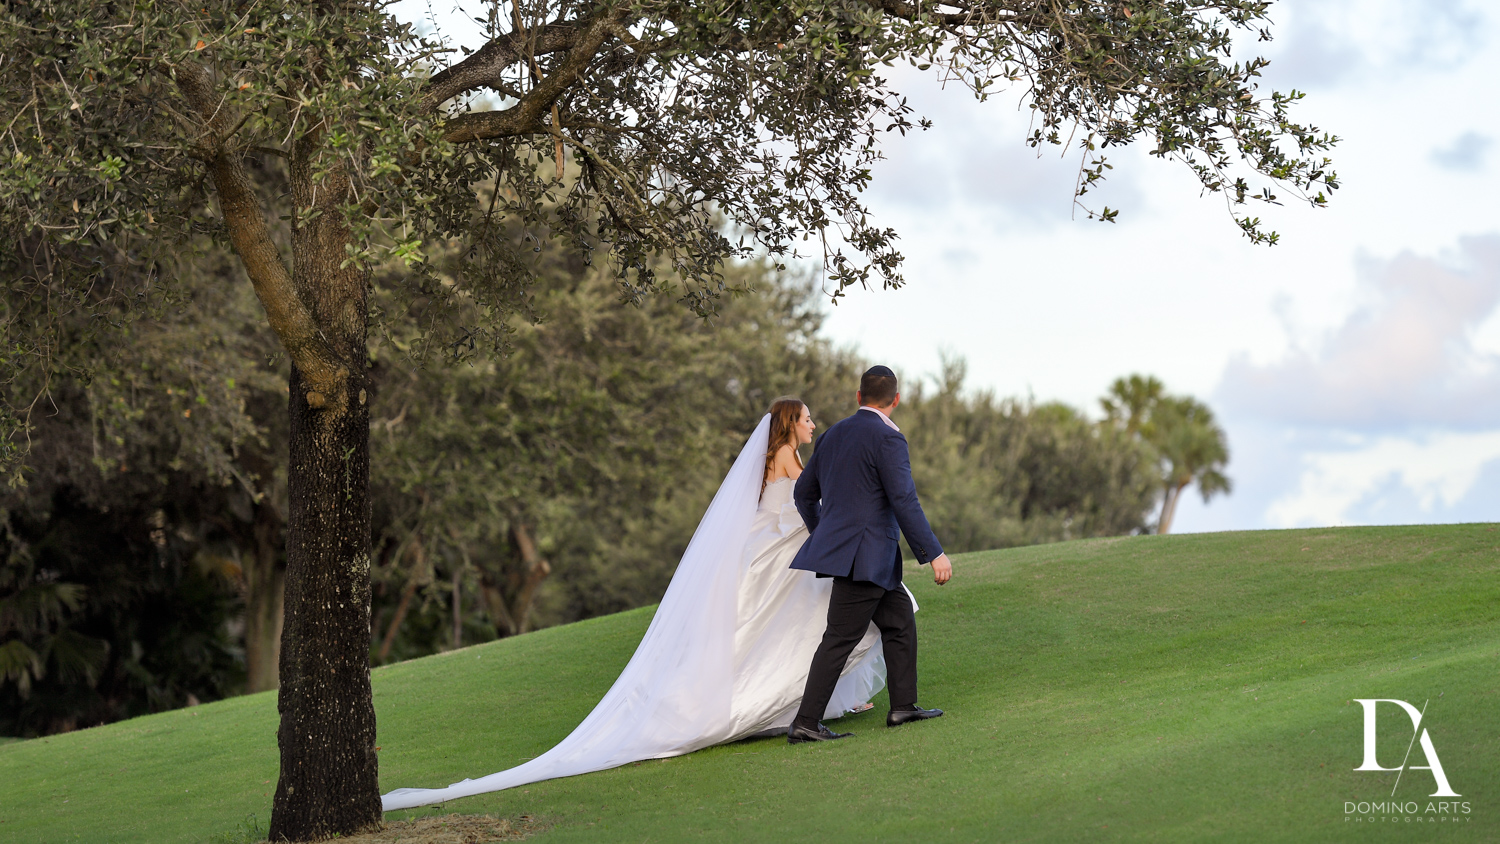 Beautiful Intimate Wedding at Mizner Country Club by Domino Arts Photography